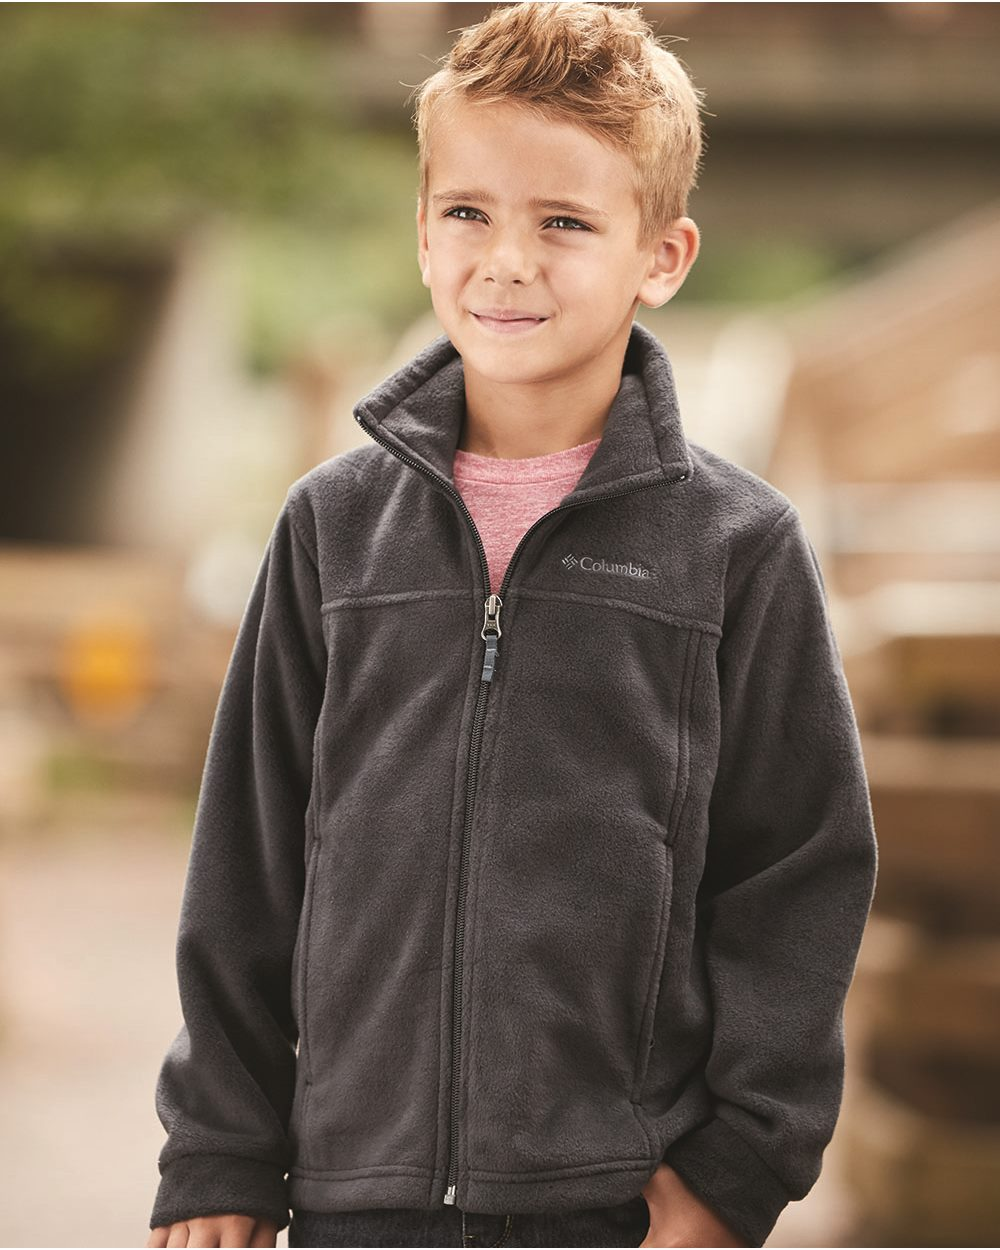 Columbia 151045 - Youth Steens Mountain Full-Zip Jacket